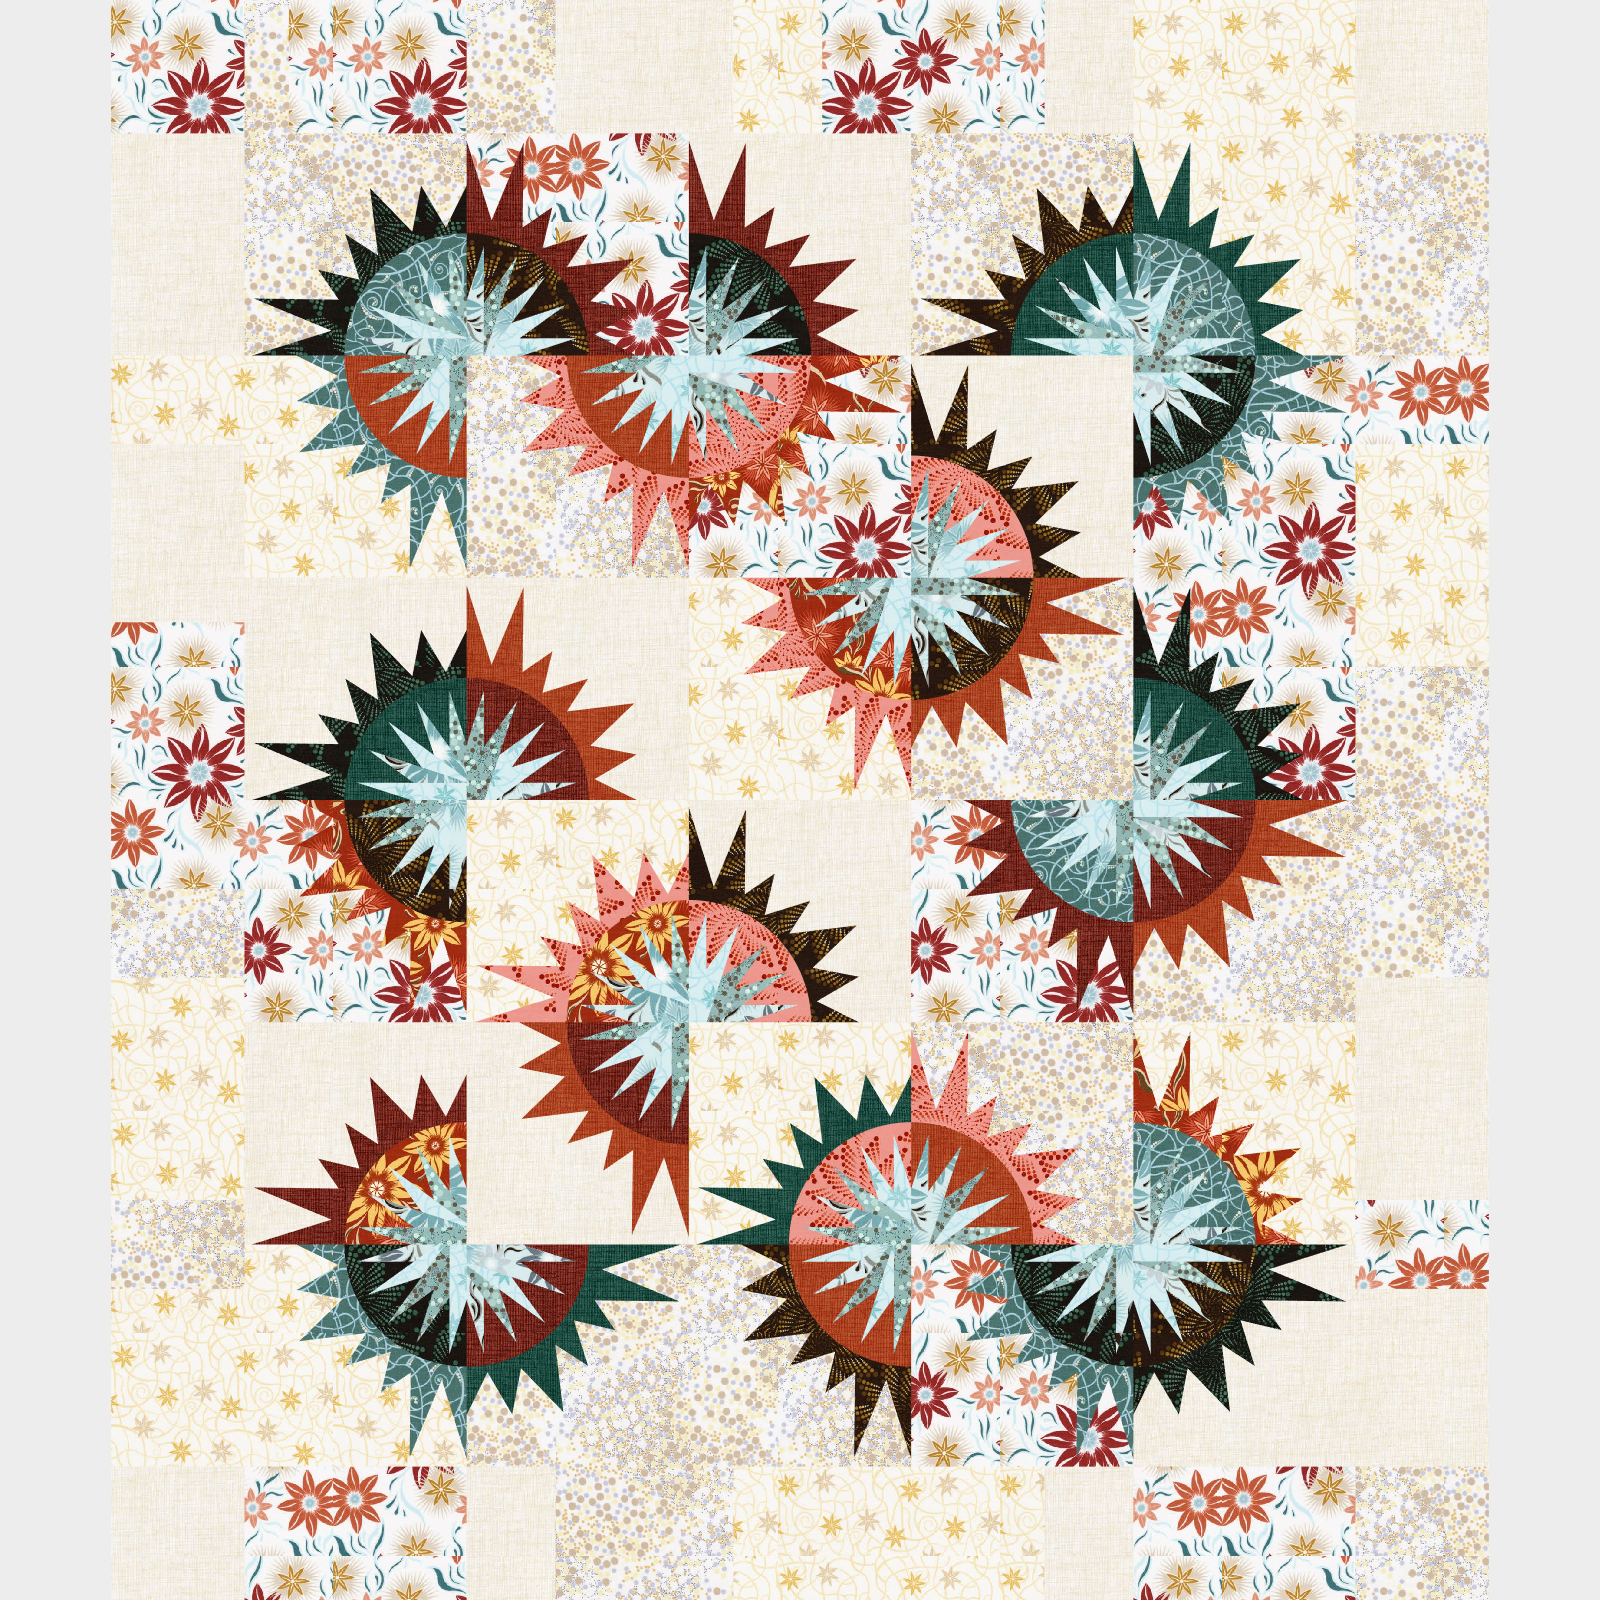 Sunflower Illusions in Desert rose • 62x72 • $160.00 Fabric Only $195.00 Kit with Pattern